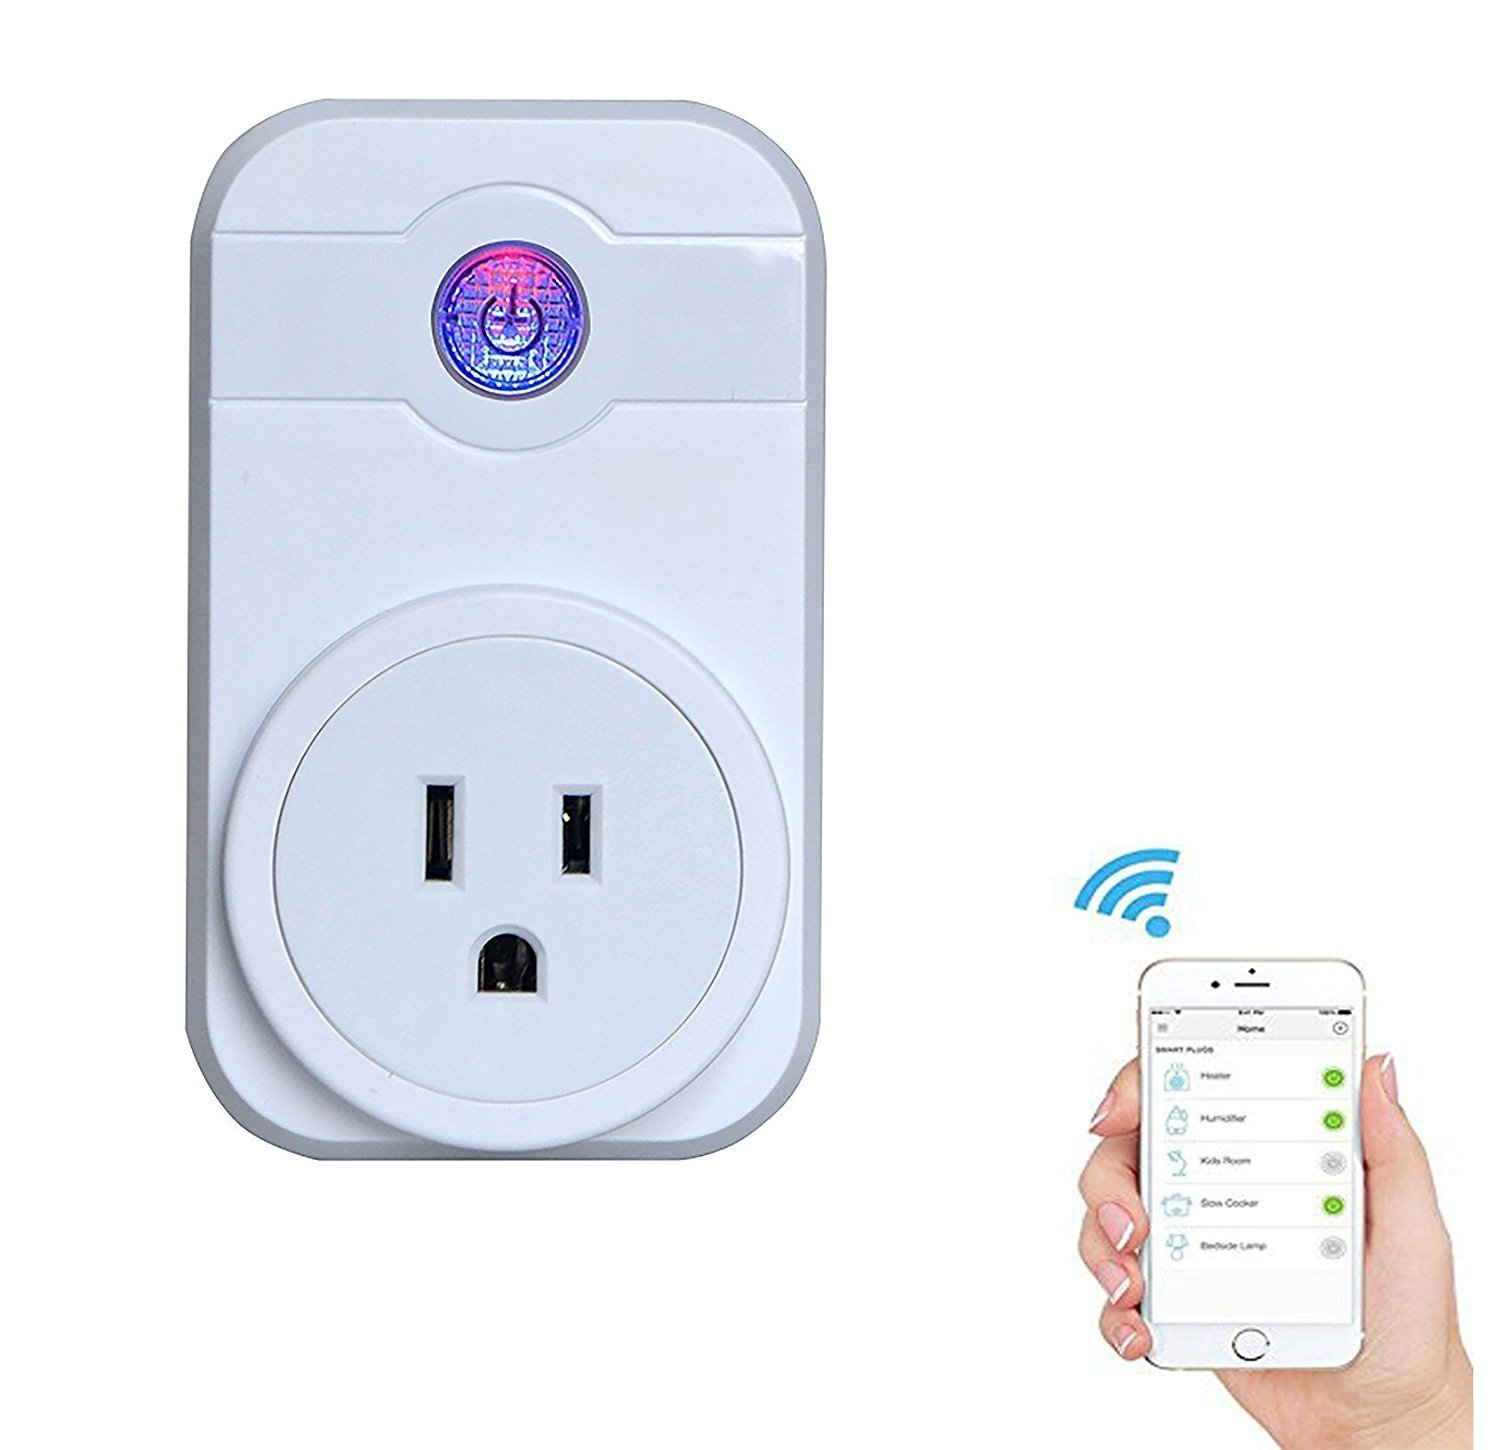 GOSTAR Smart WiFI Plug Wireless Timer Socket Outlet Remote Control Electronics for Household Appliances Work with Amazon Echo Alexa Google Home